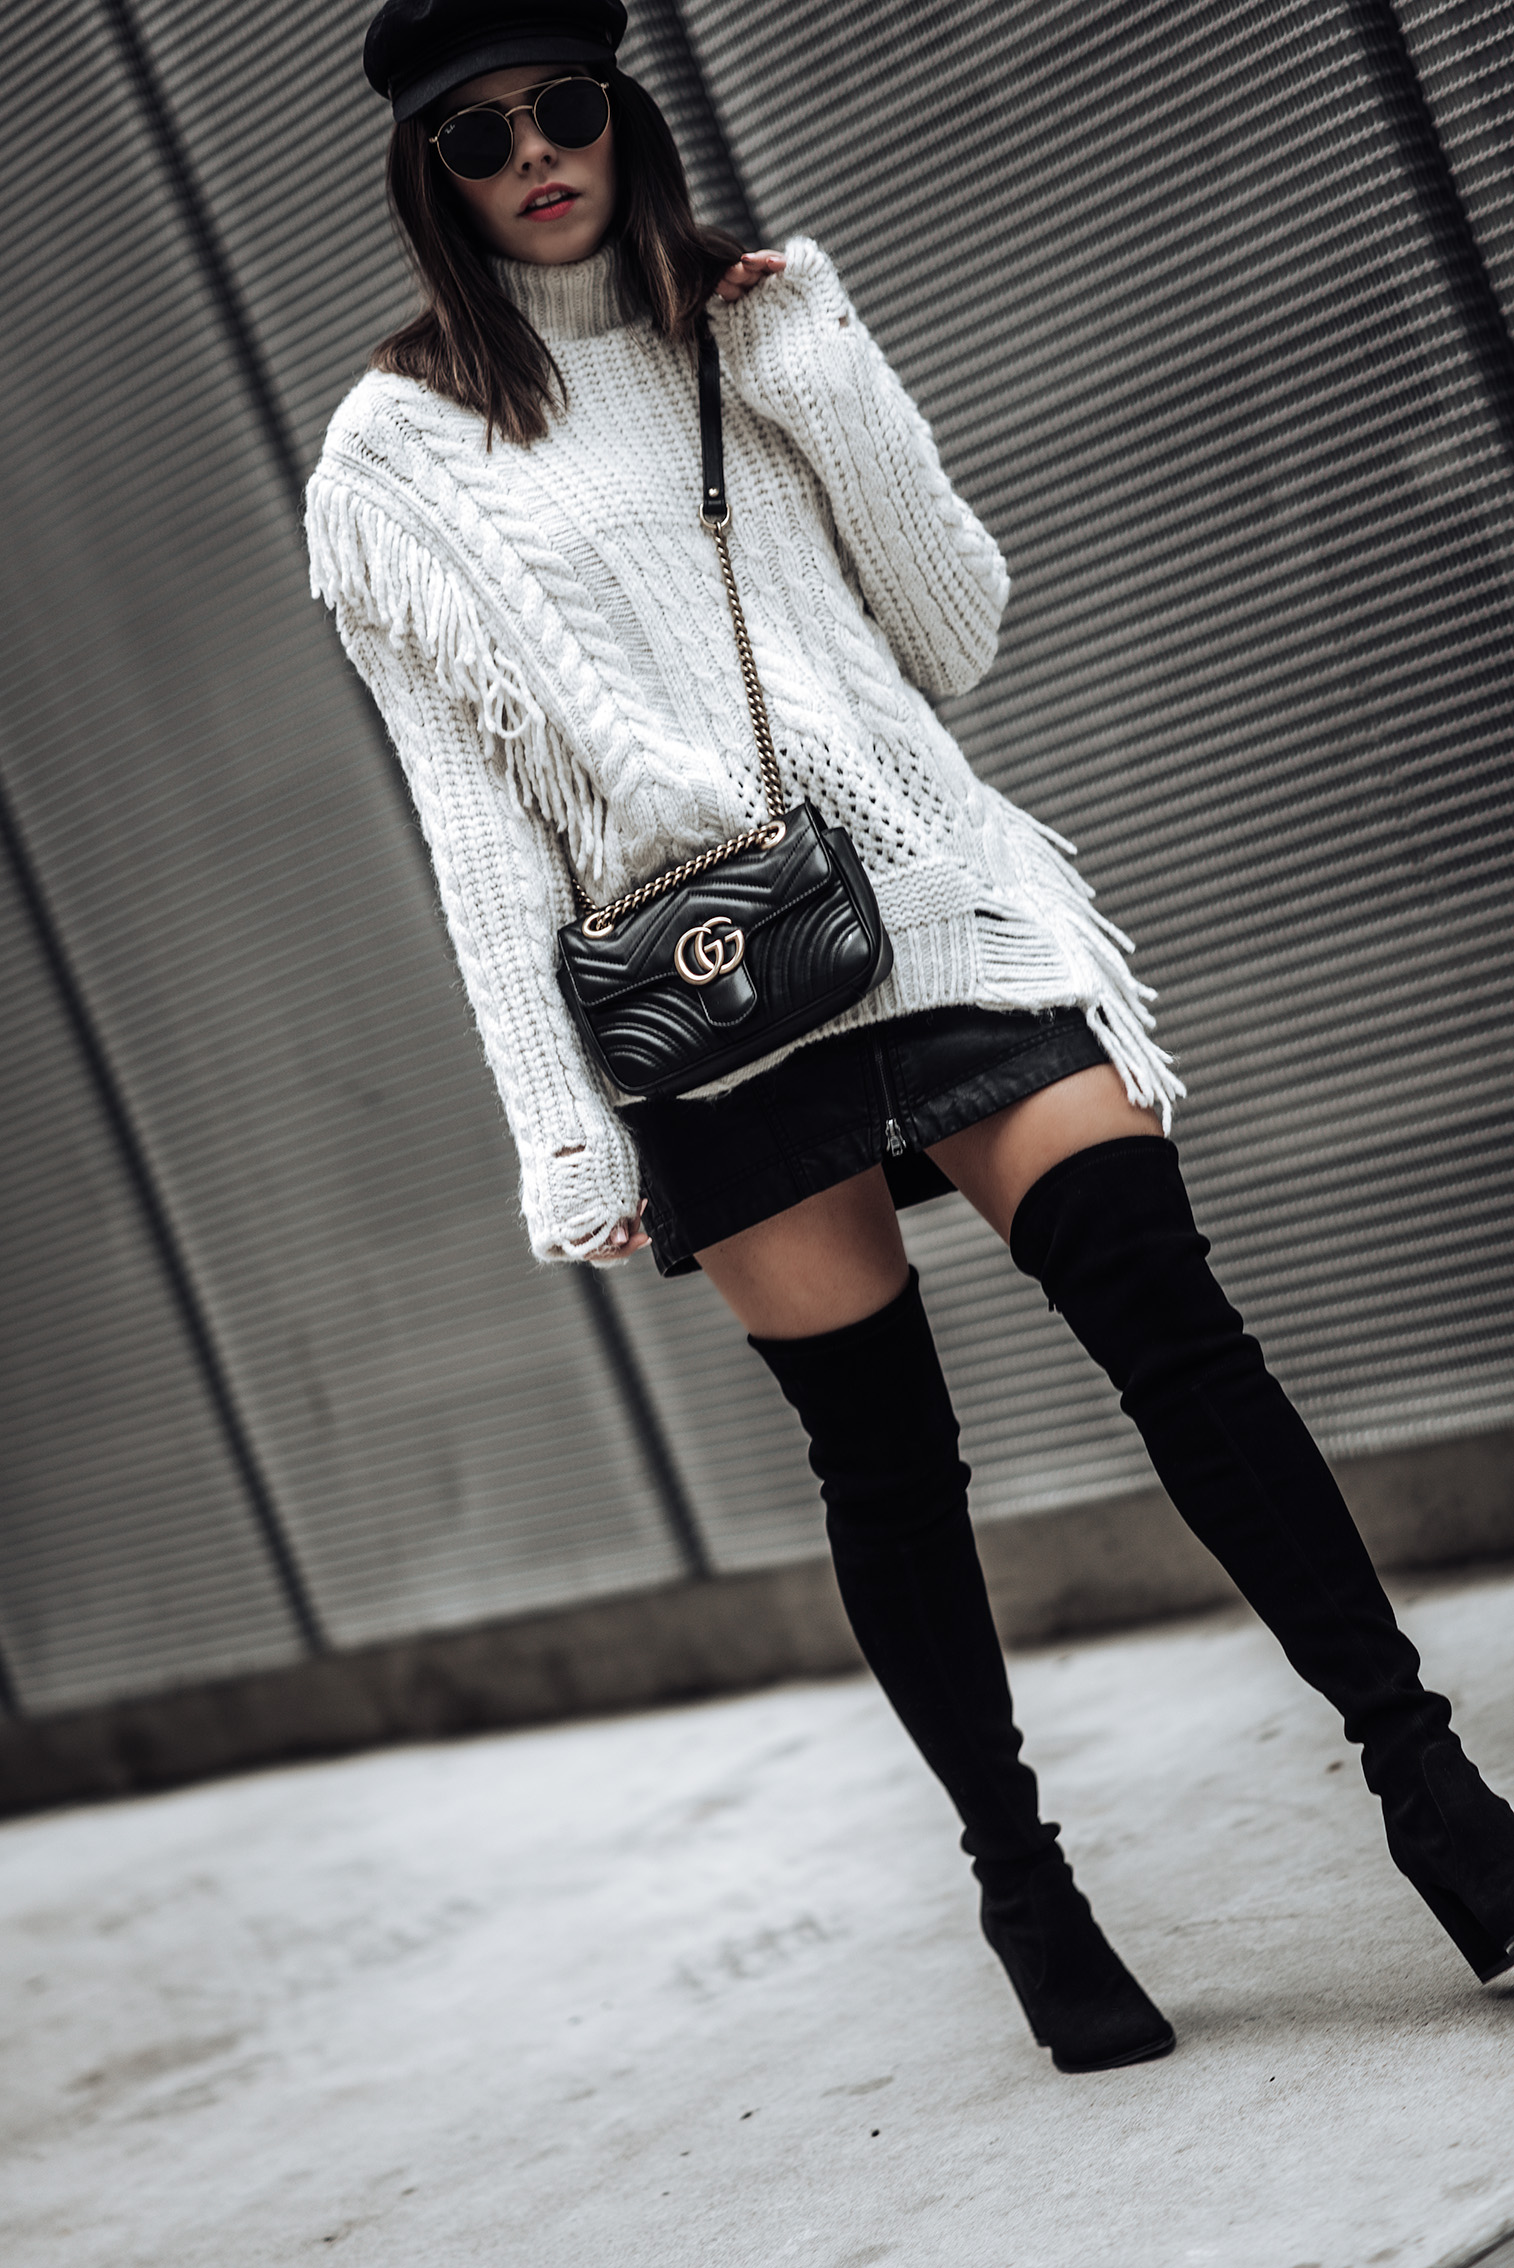 Texture | Chunky Cable Knit Sweater | Free People Vegan Mini skirt | Gucci Marmont Bag | Stuart Weitzman Funland Boots | #streetstyle #fashionblog #liketkit